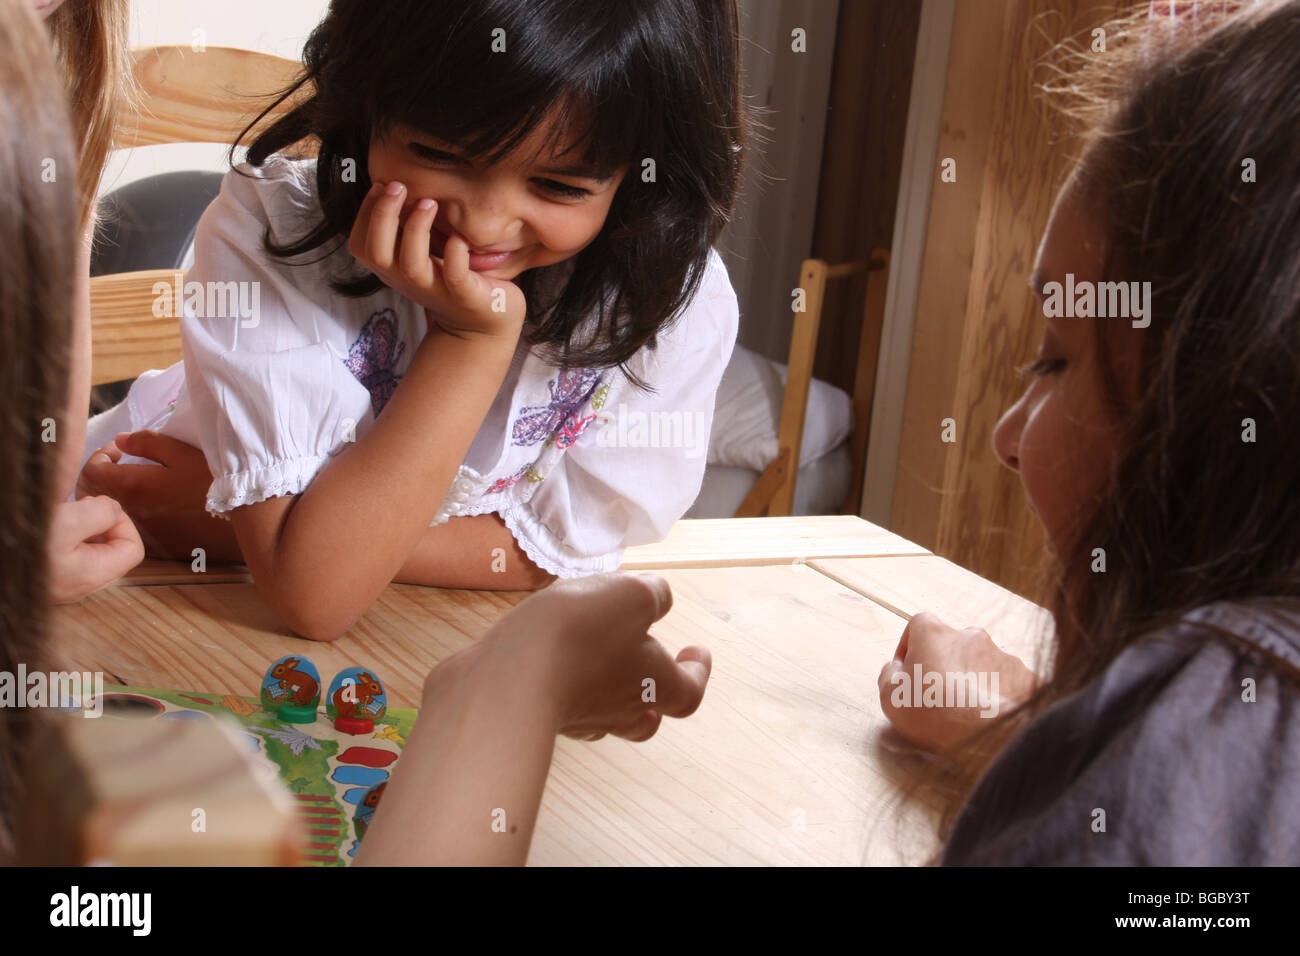 Children playing a board game. - Stock Image